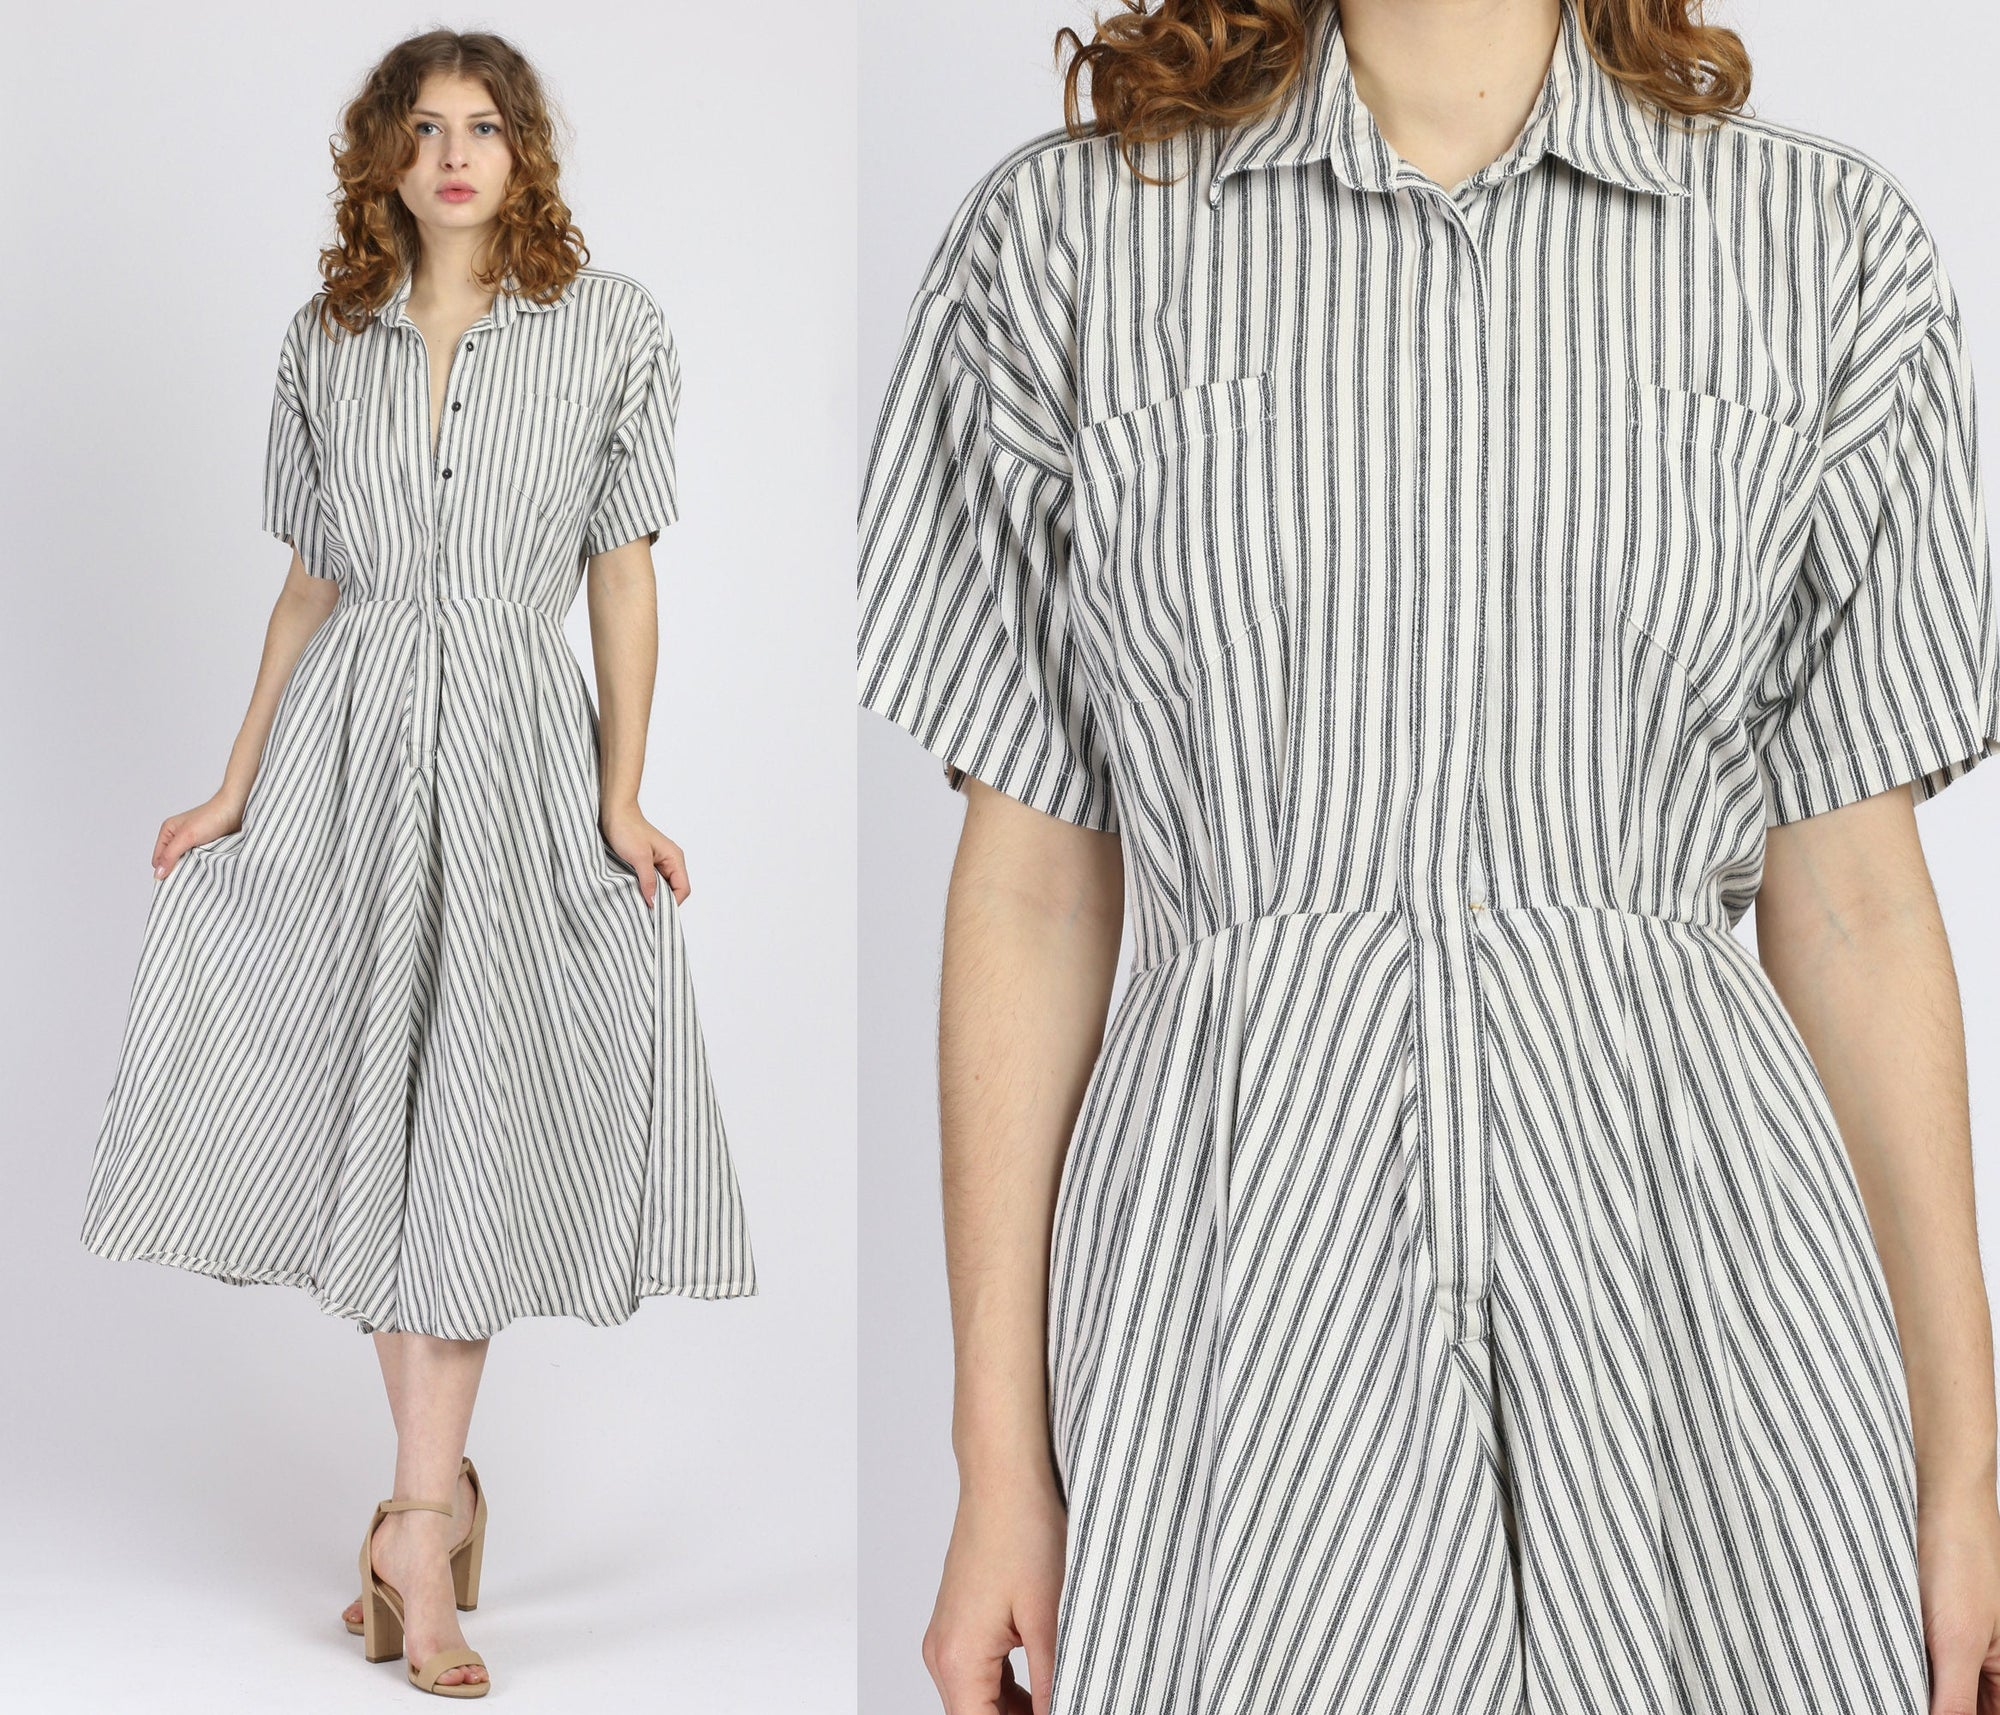 Vintage Norma Kamali Designer Striped Shirtdress - Small